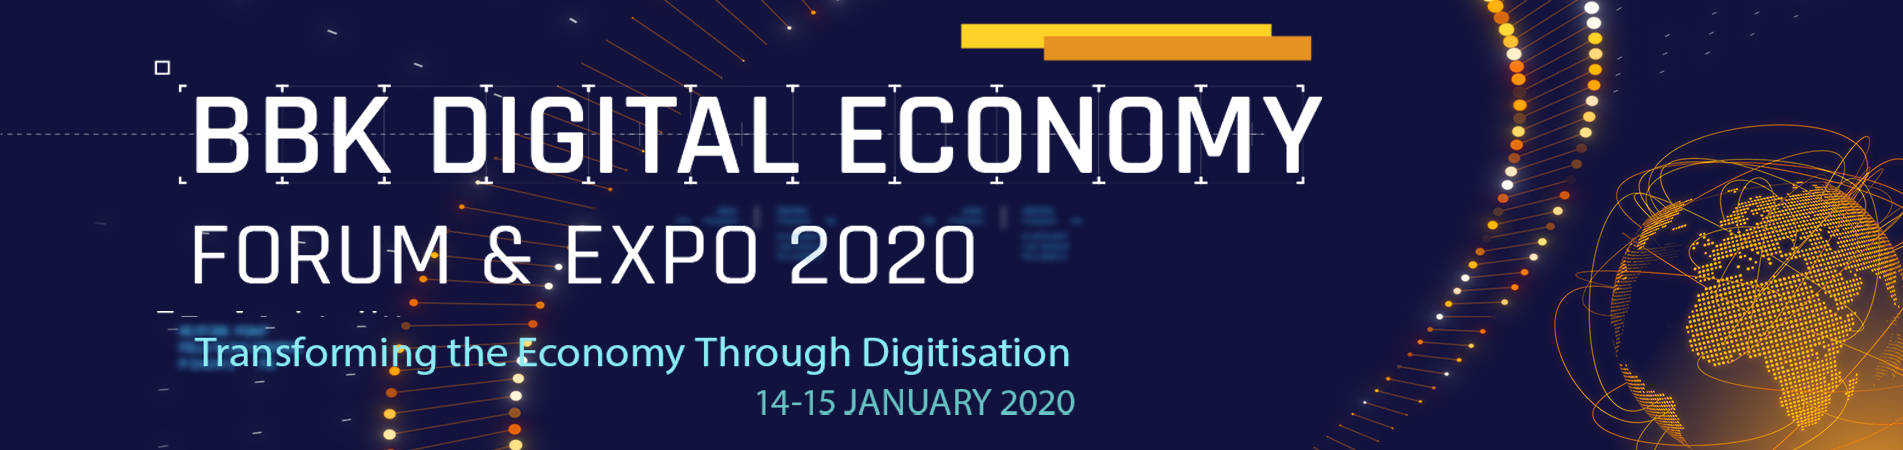 BBK Digital Economy Forum